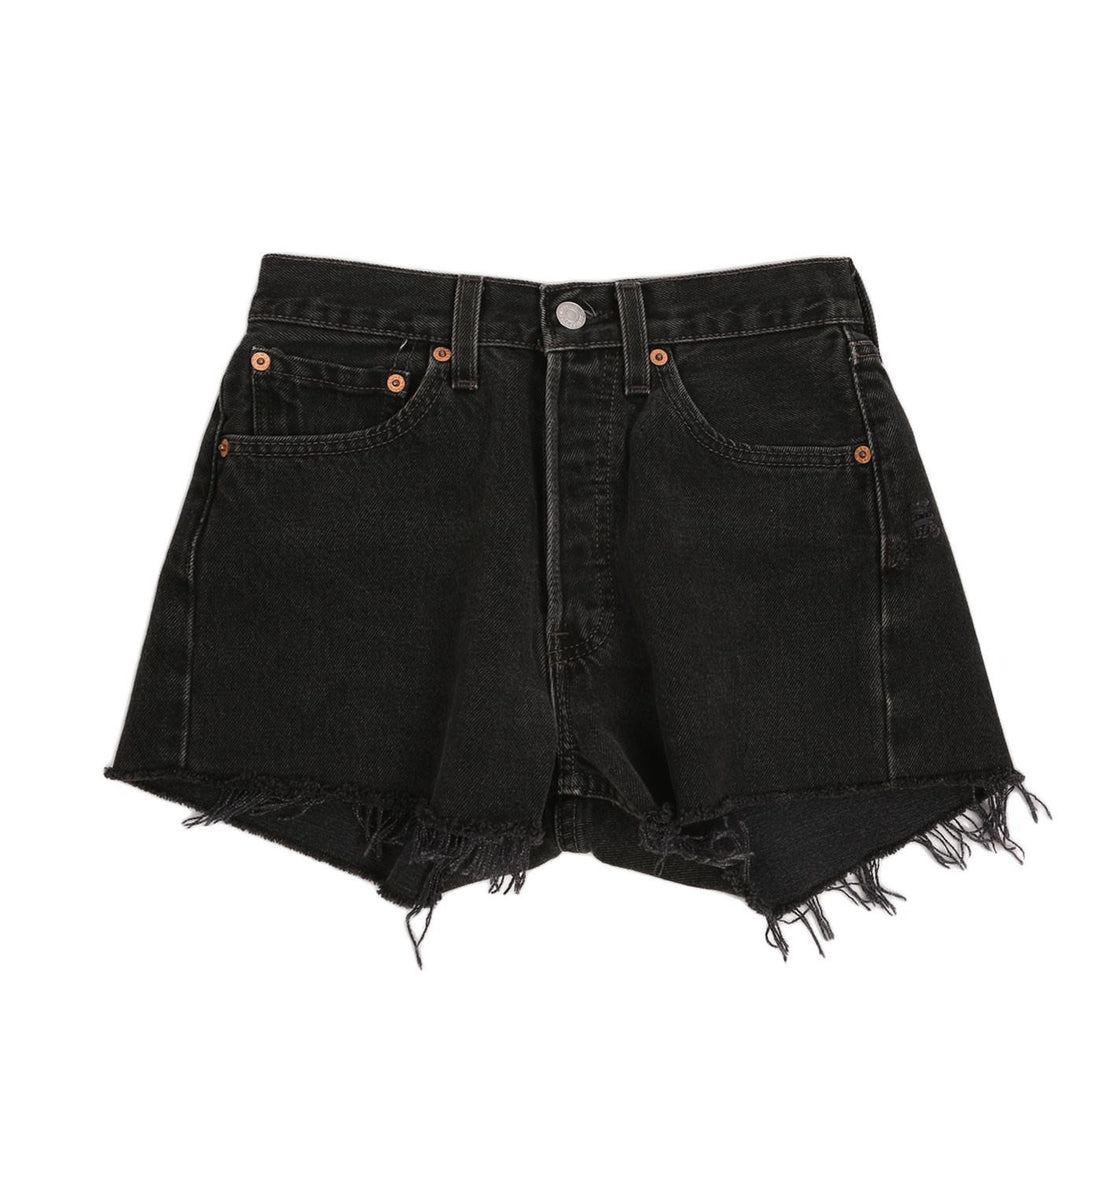 Vintage 70s Levis 501 Black Cutoffs - Vintage: Women's: Apparel - Iron and Resin